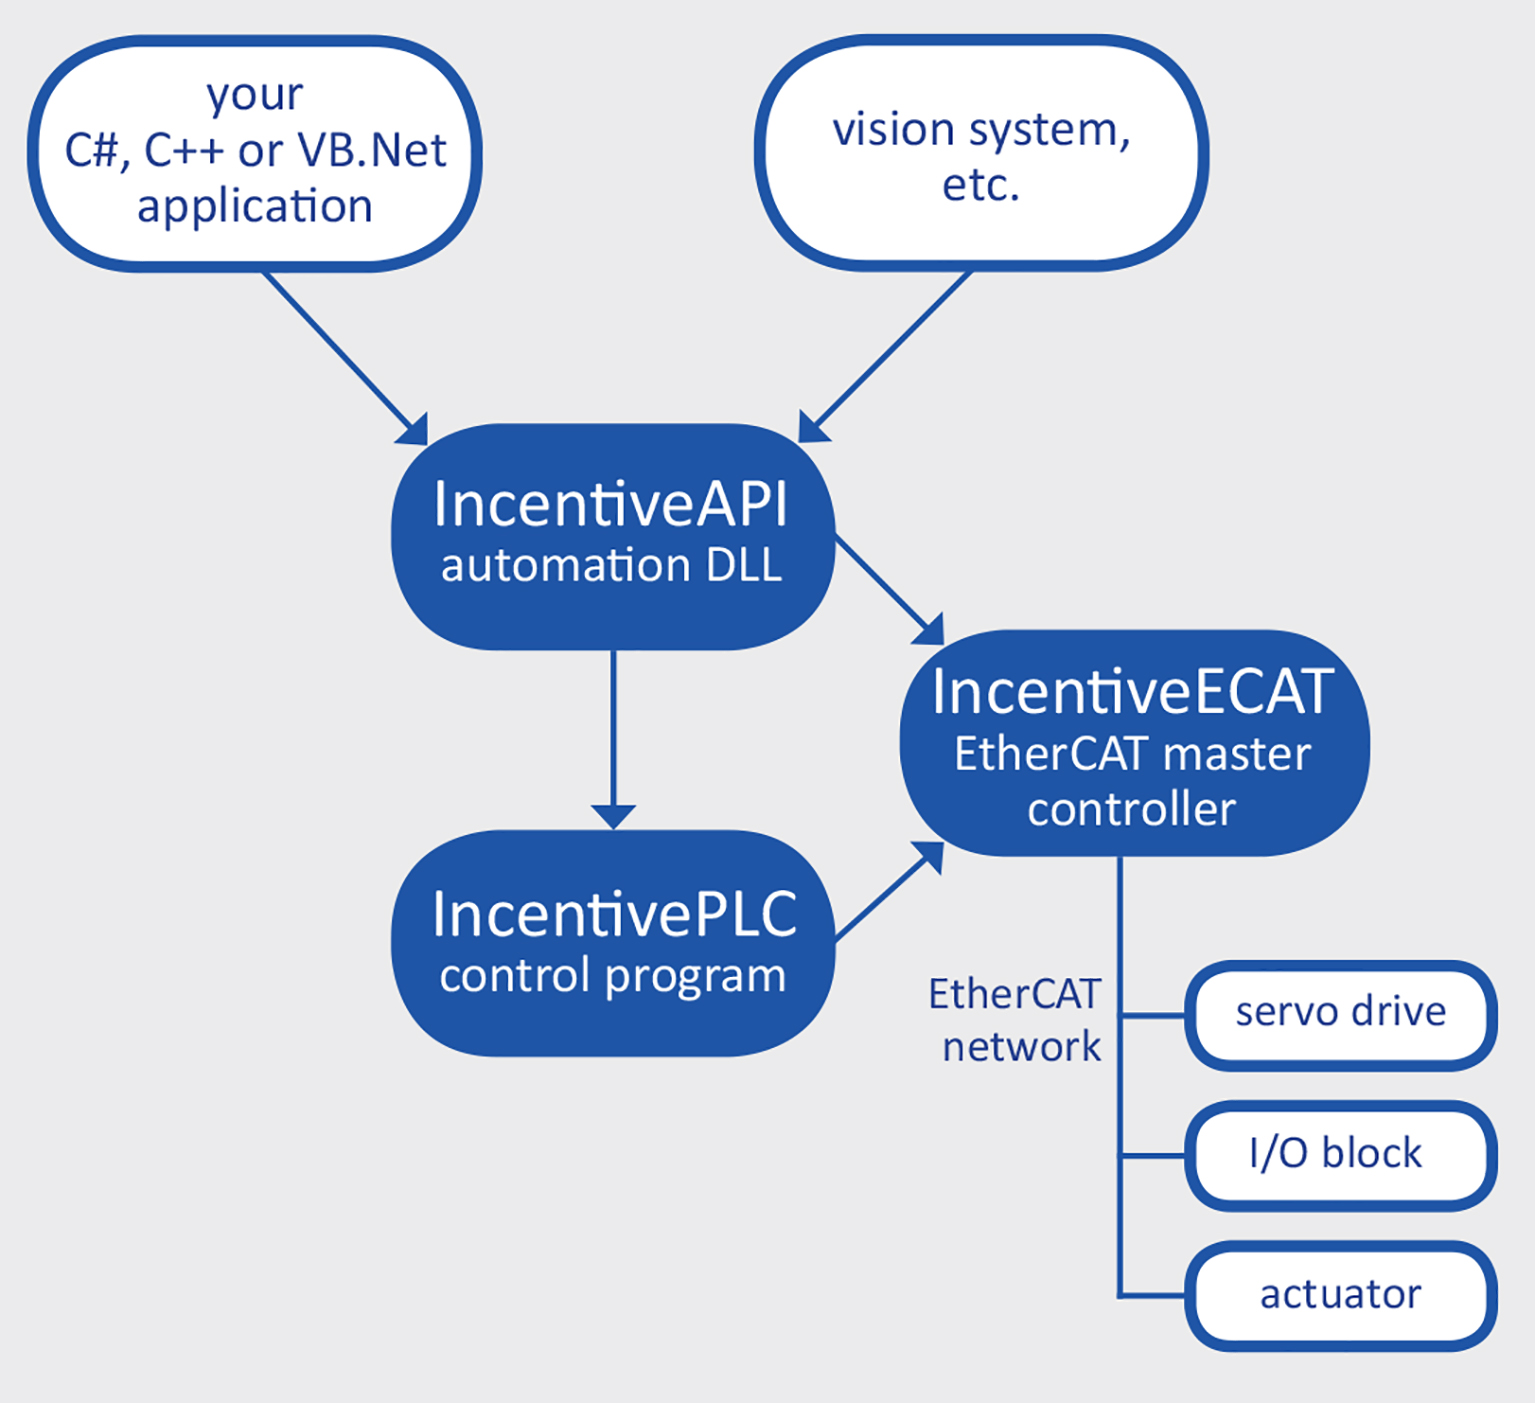 Incentive™ family of automation software components for powerful and comprehensive control